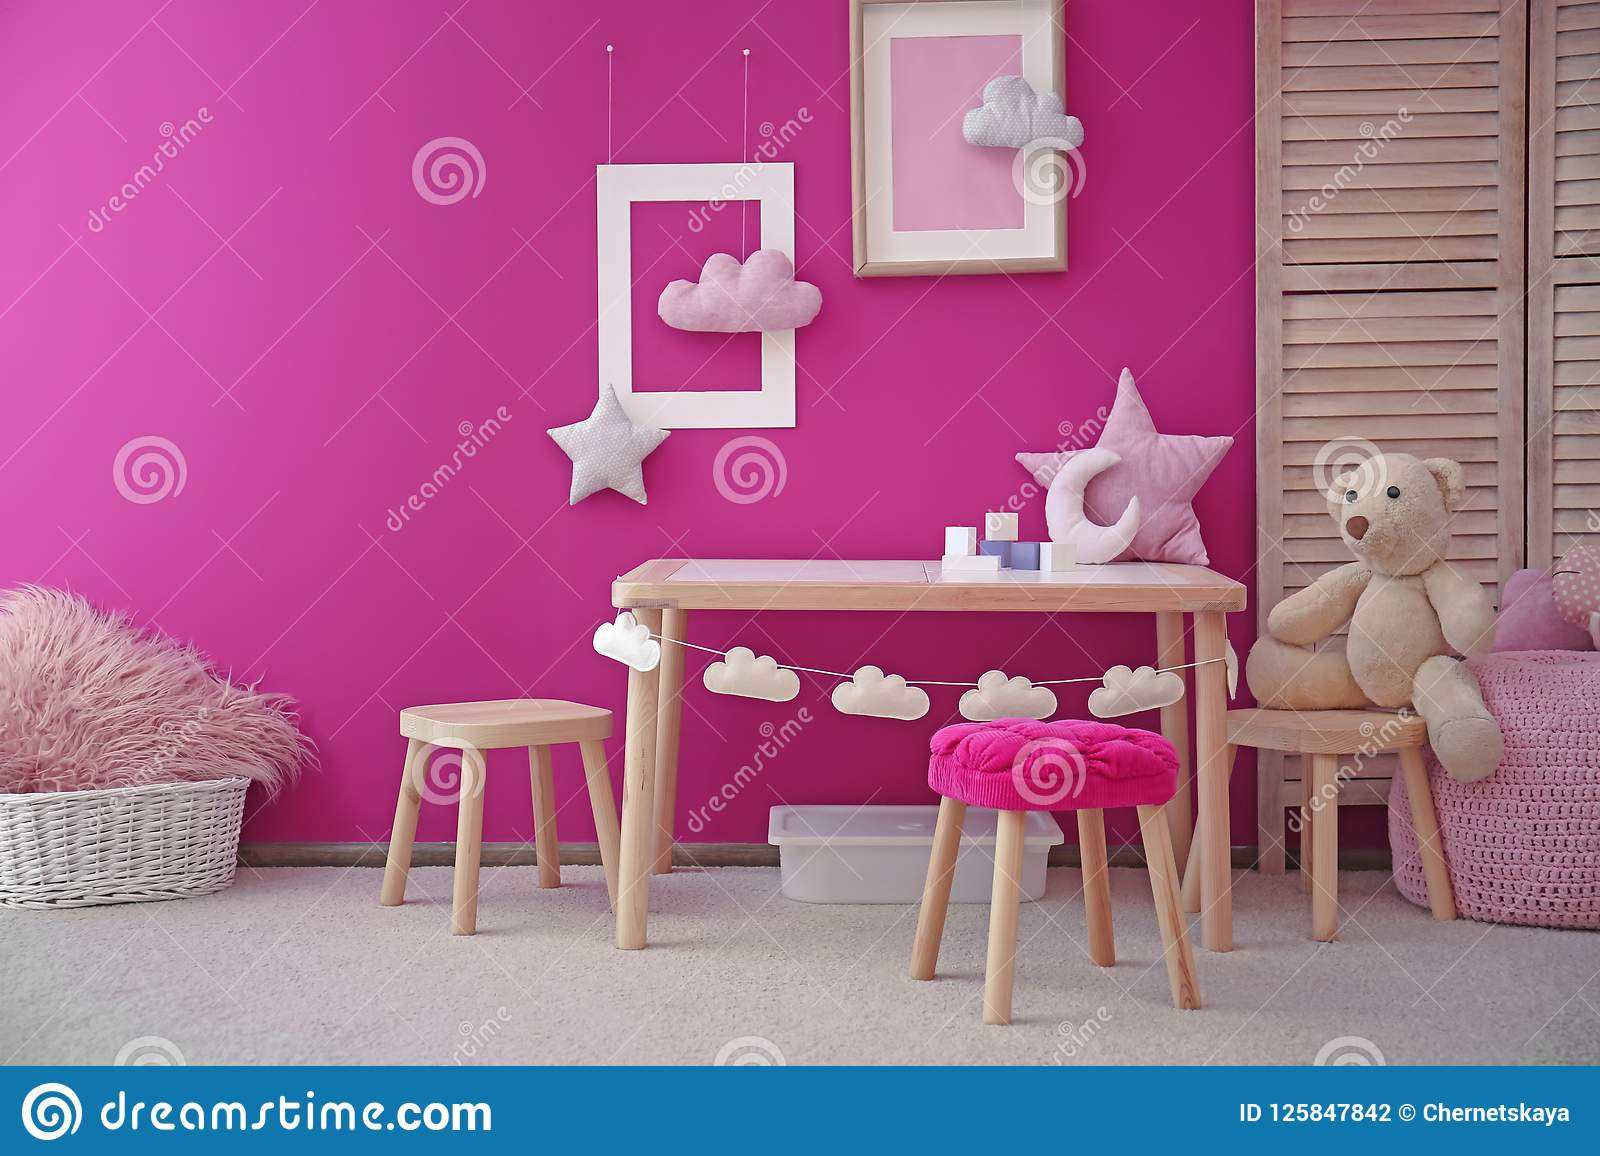 Modern Interior Of Child Game Room With Table Stock Photo Image Of Decor Decorations 125847842